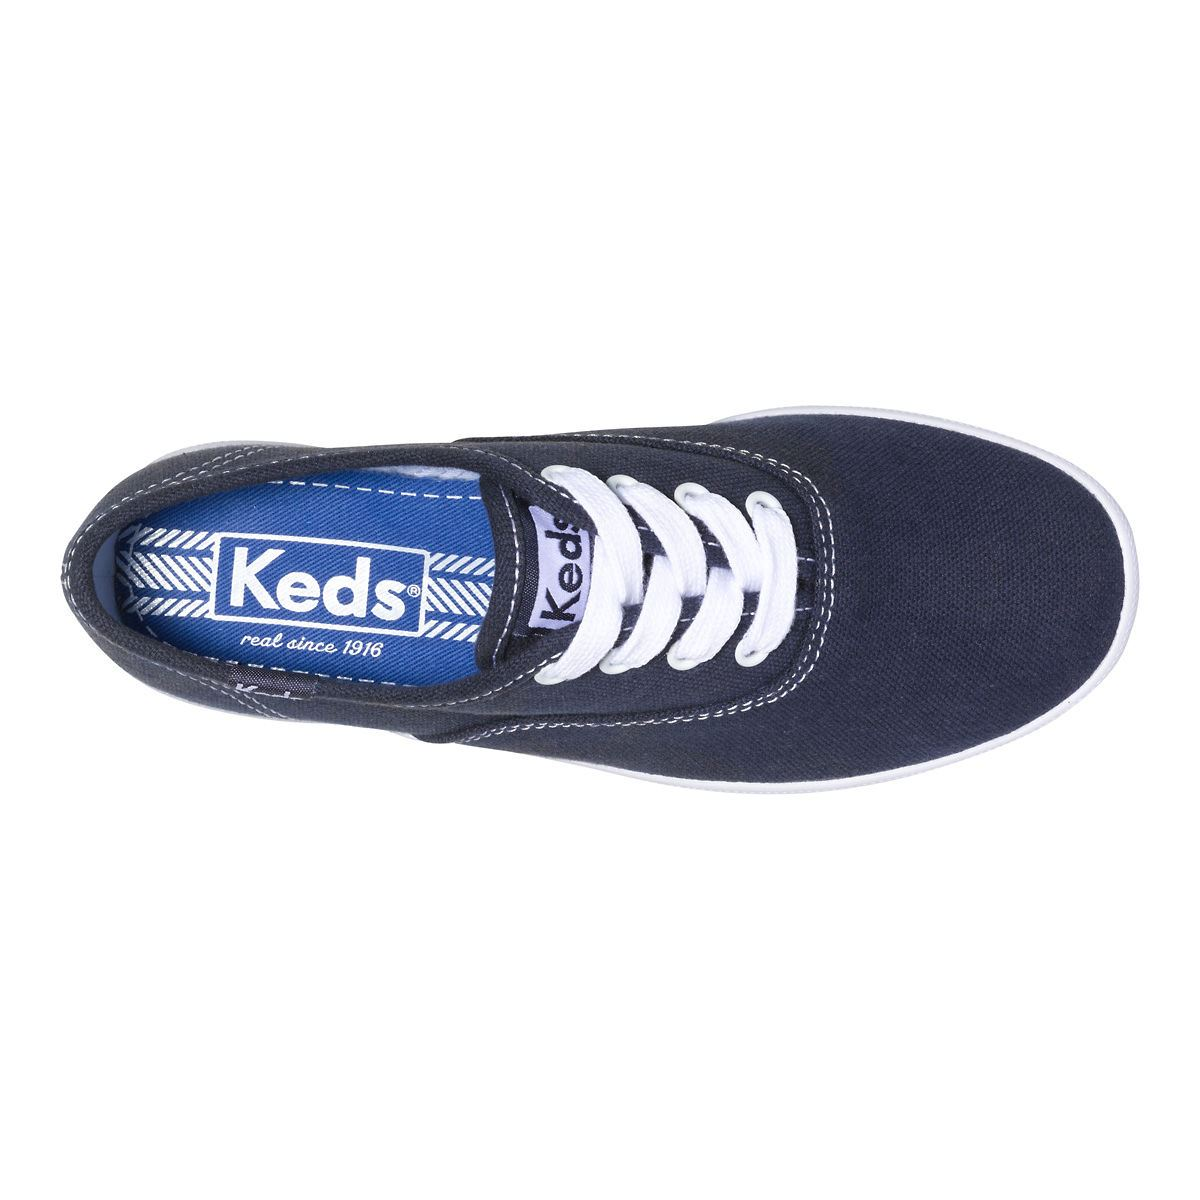 girls size 5 navy tennis shoes keds